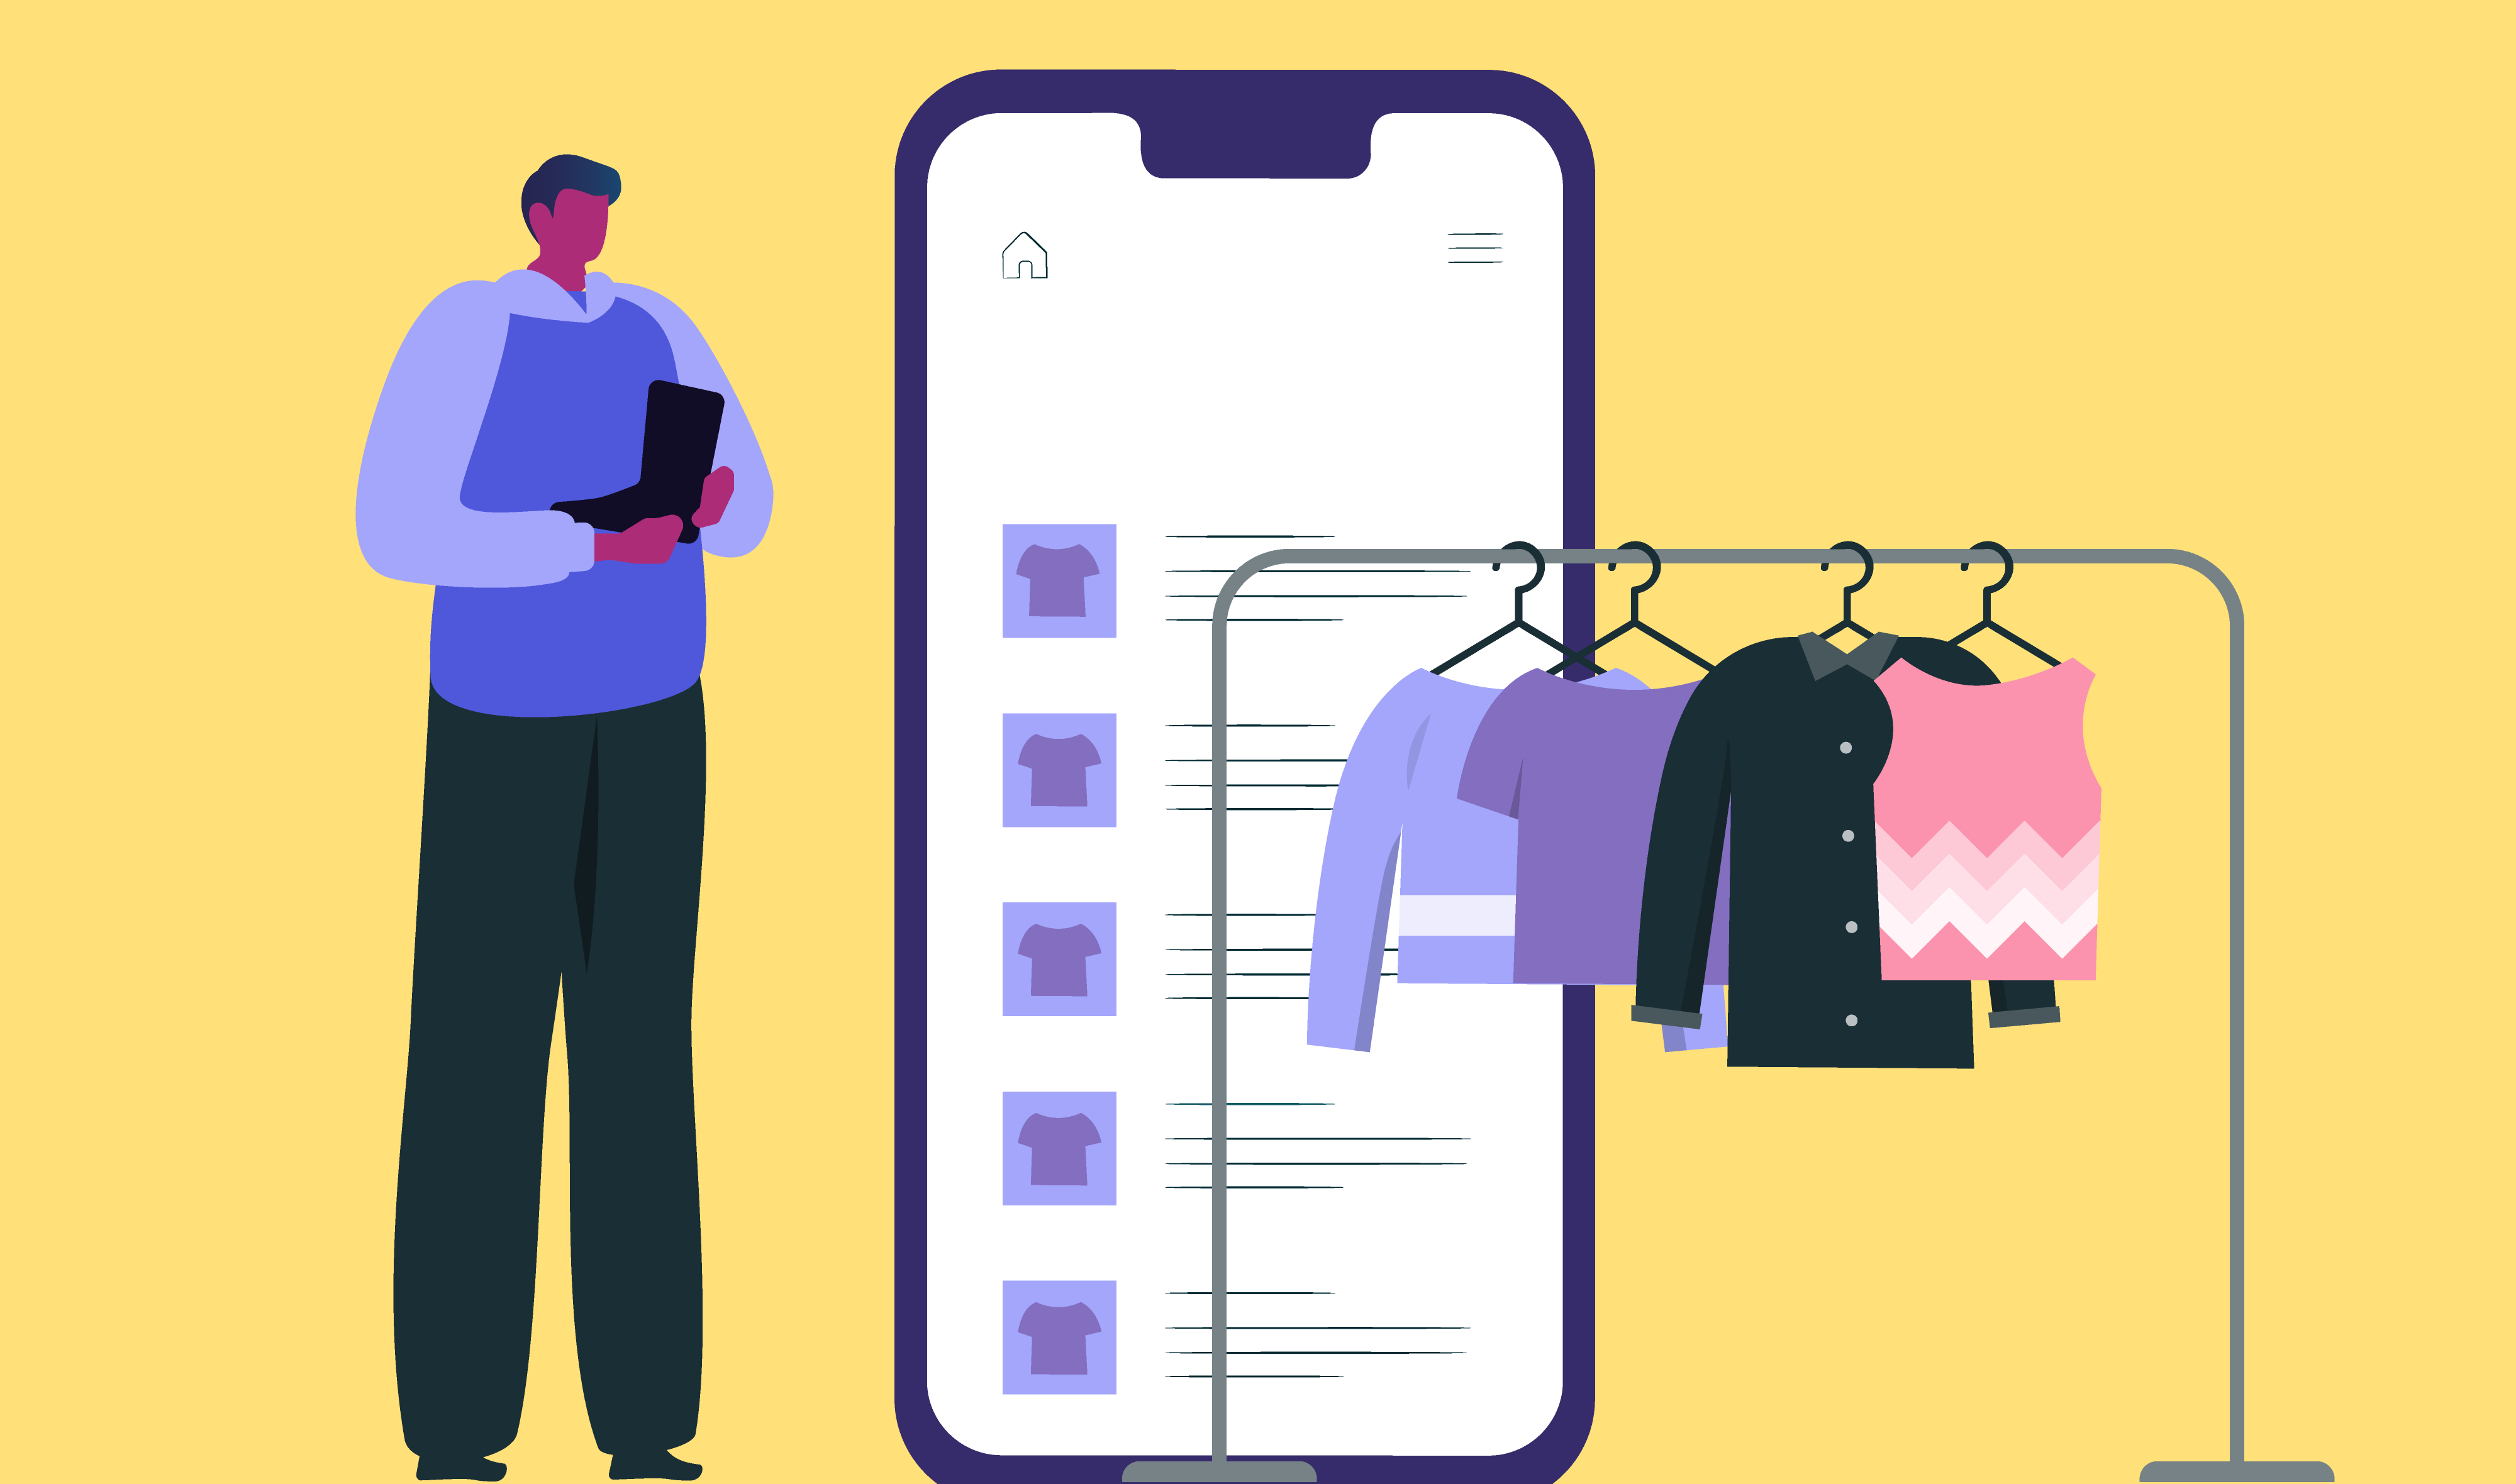 How to Bulk Delist & Relist Items with Vendoo To Improve Your Sales